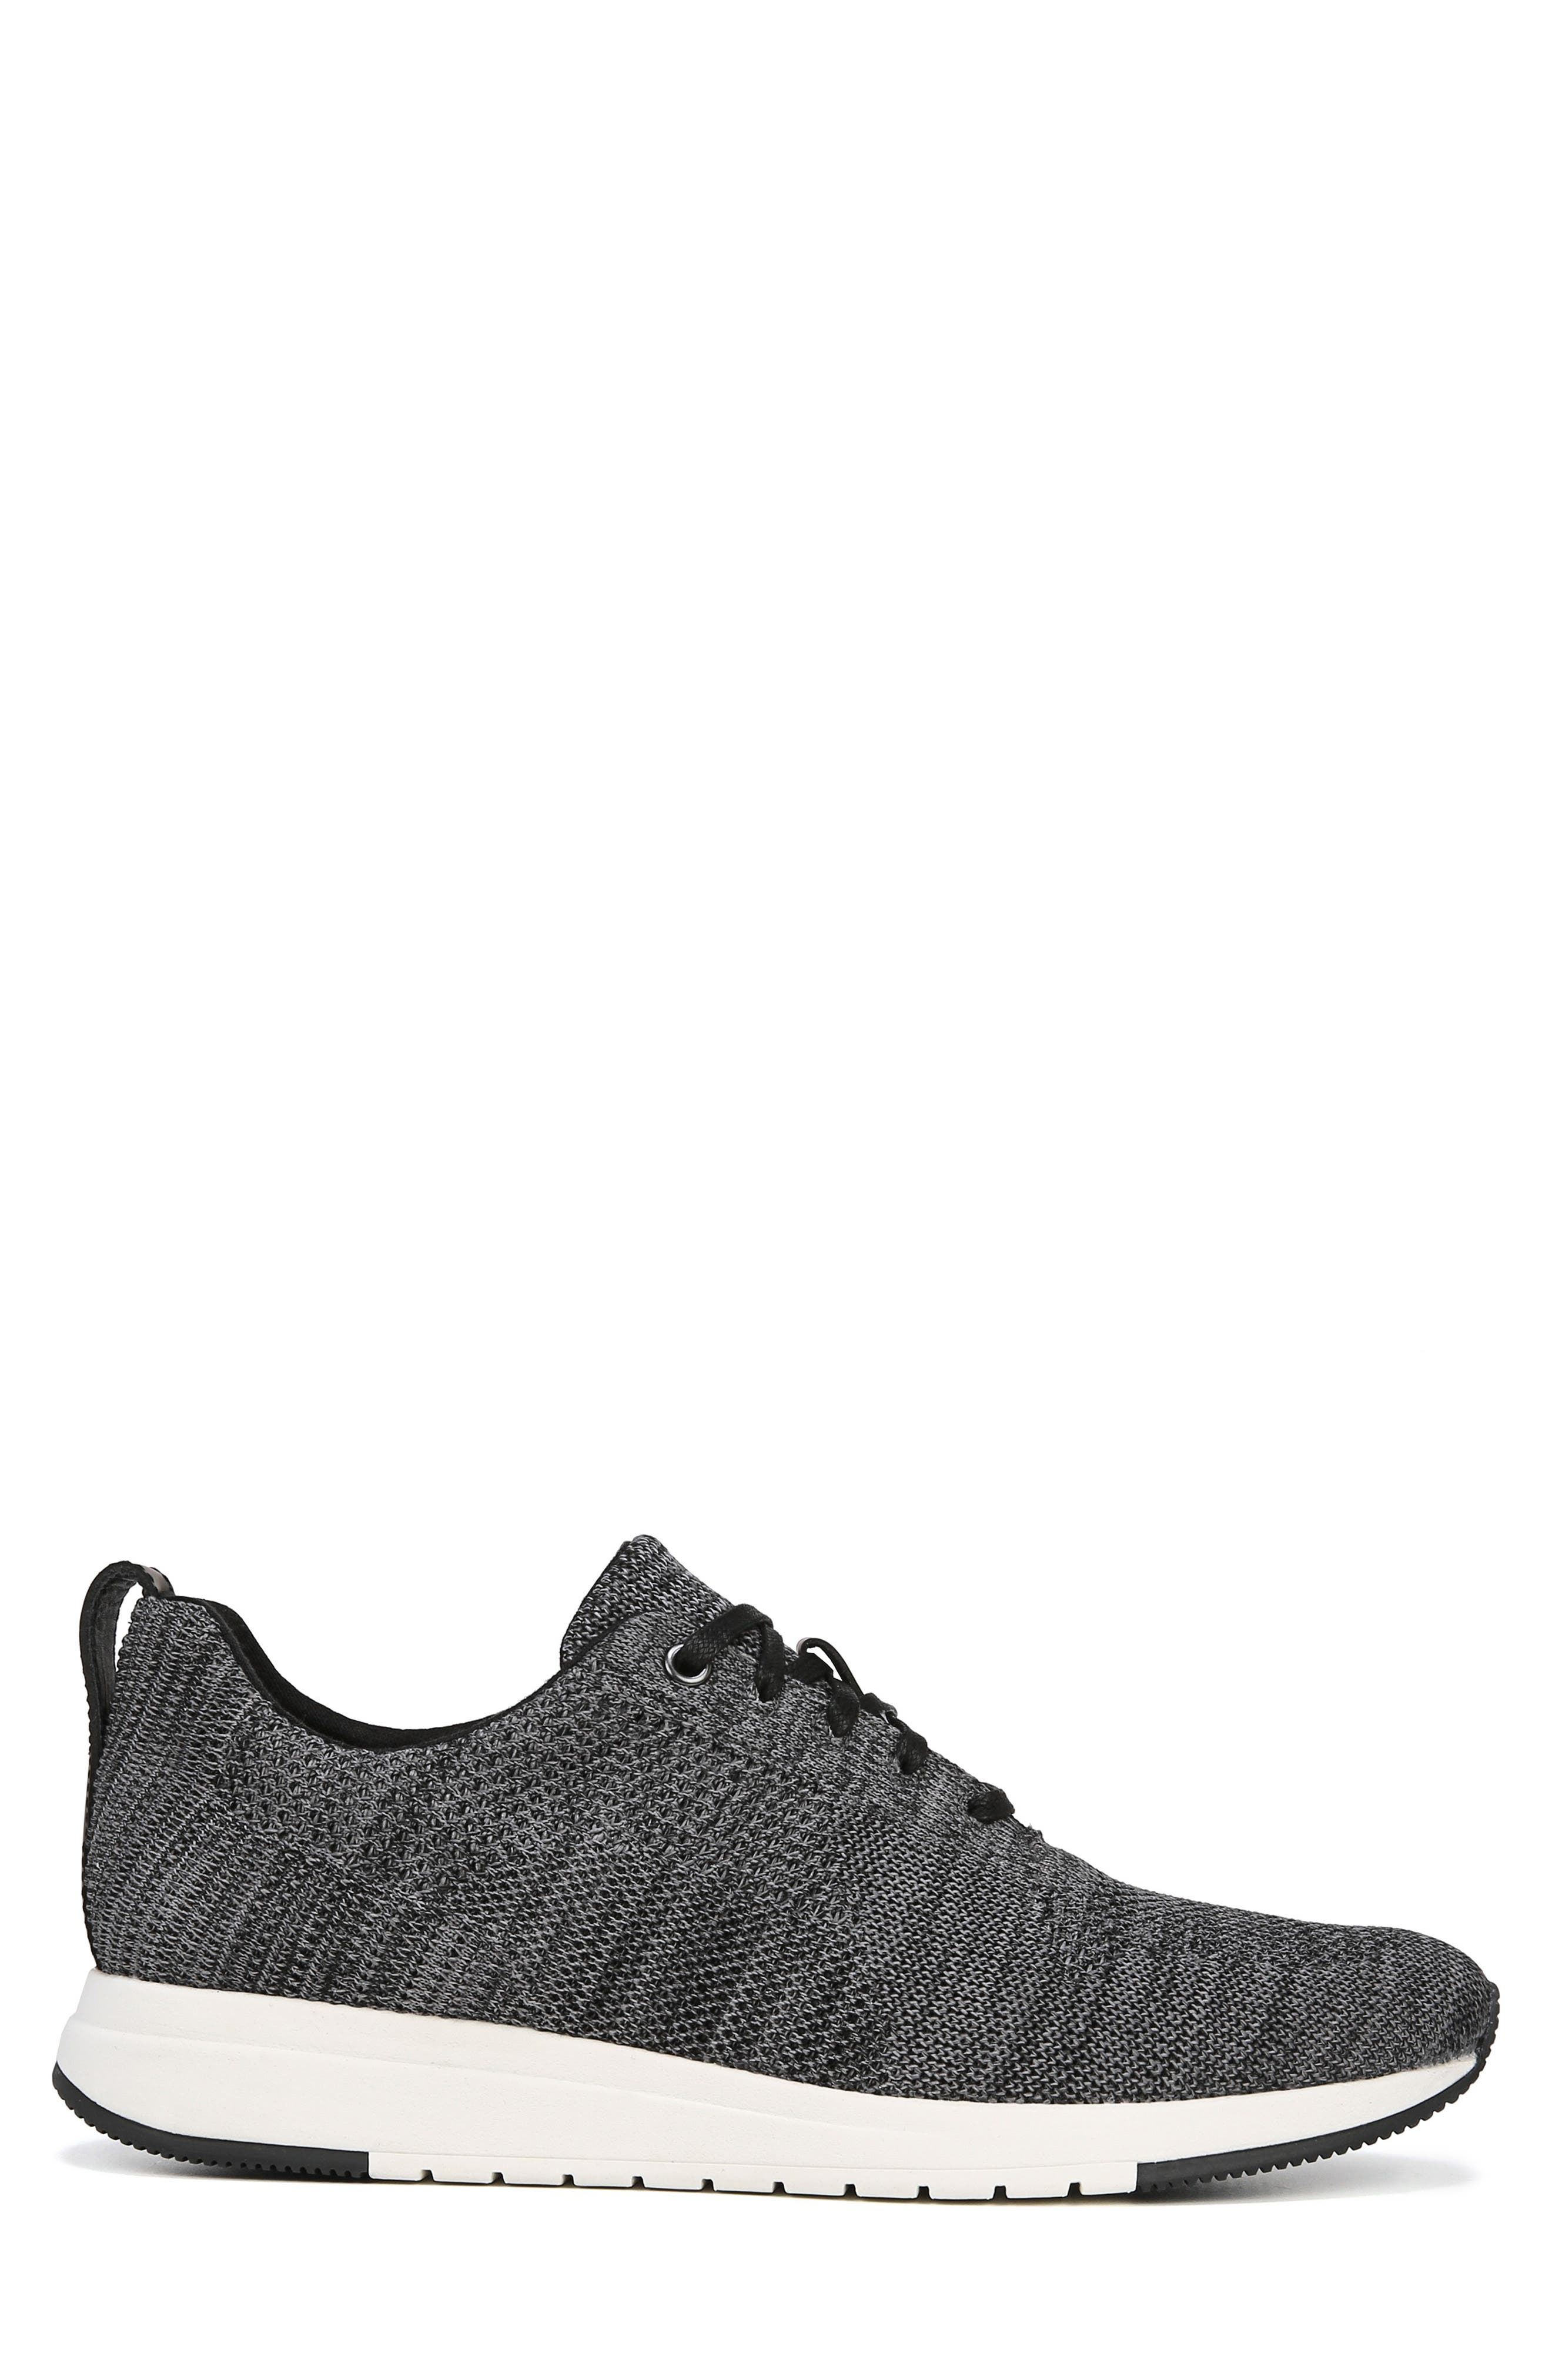 VINCE, Palo Knit Sneaker, Alternate thumbnail 3, color, MARL GREY/ BLACK